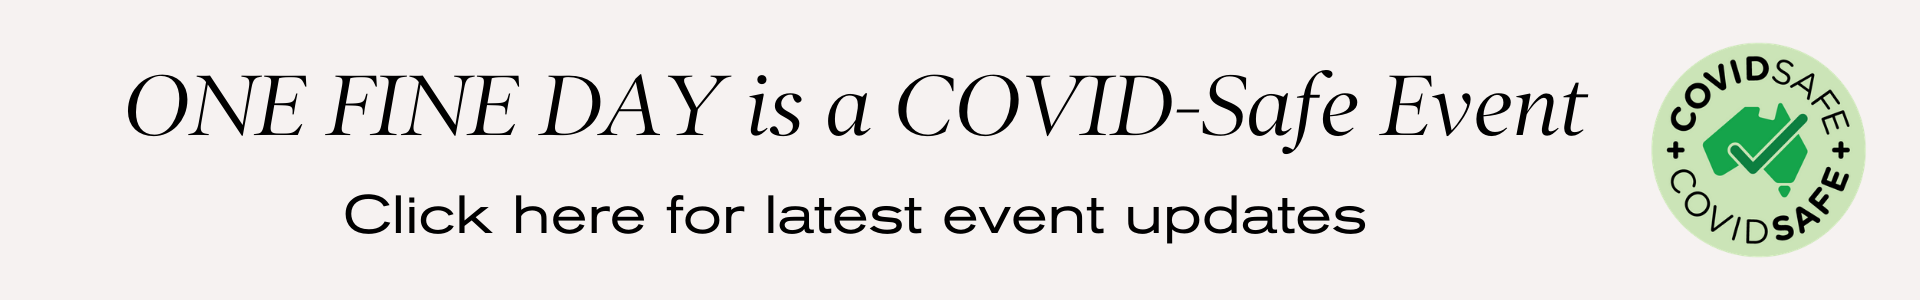 One Fine Baby is a COVID-Safe Event (Covid Safe Circle Check)